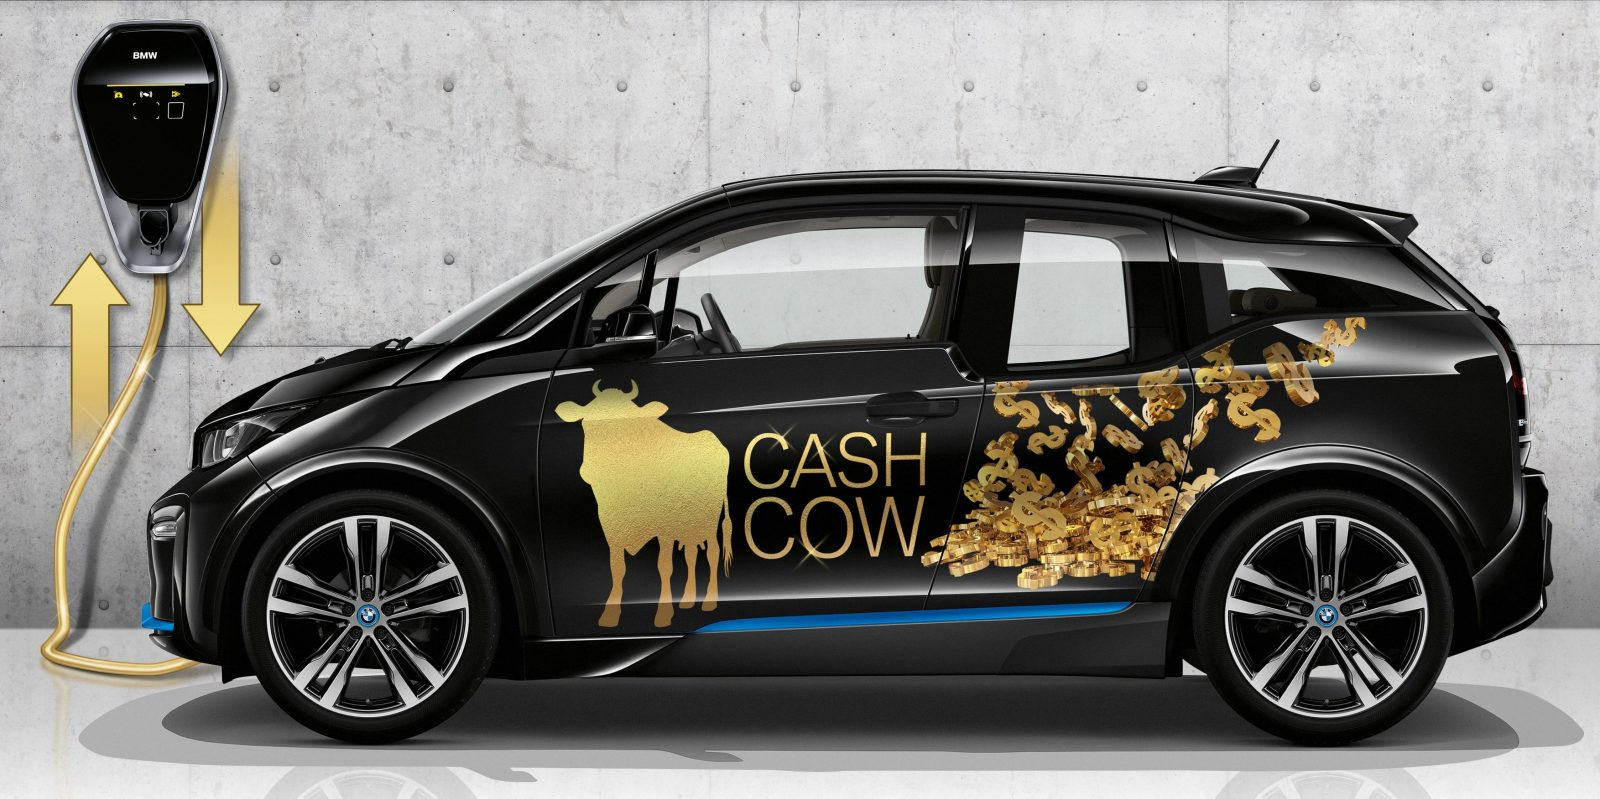 BMW says EV owners can turn i3 into 'cash cow', use more solar power with controllable load tech